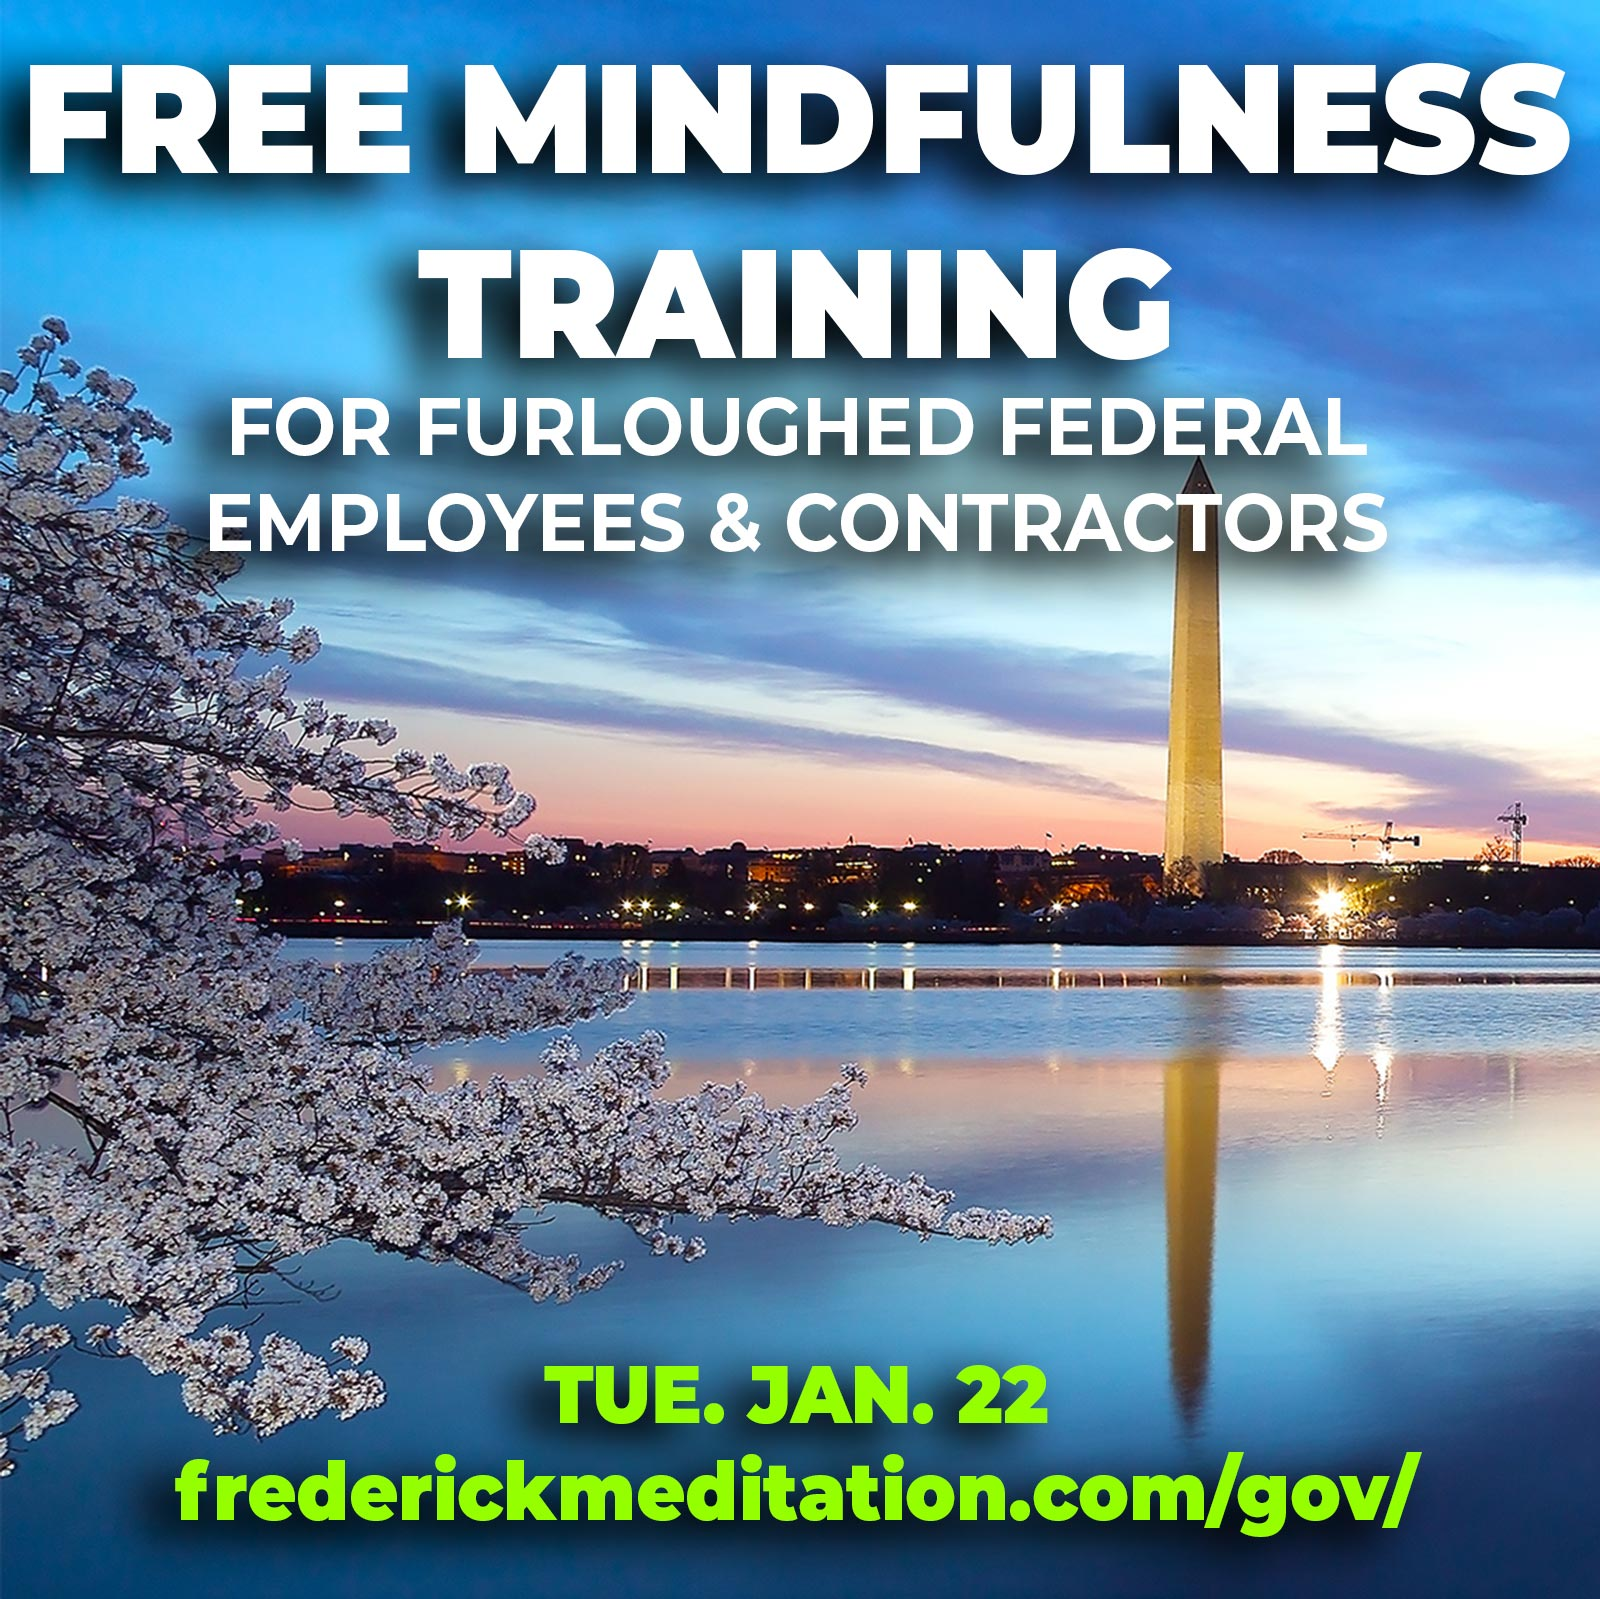 Mindfulness for Stress Management & Leadership Excellence: Free Training for Furloughed Federal Employees & Contractors Impacted by the 2019 Shutdown